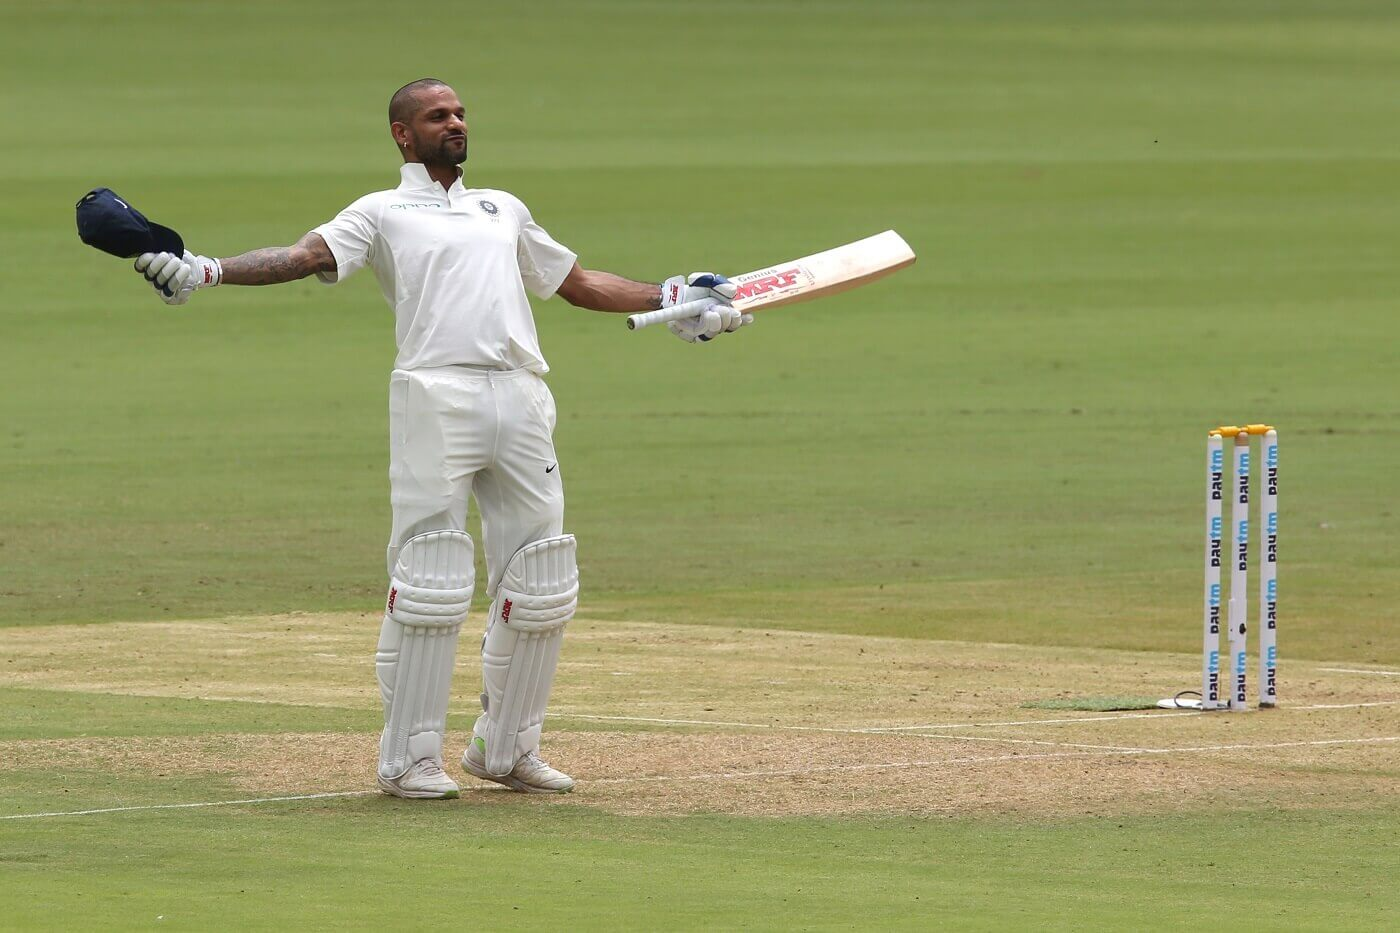 First Indian, Cricket, first day, Shikhar Dhawan, Sports